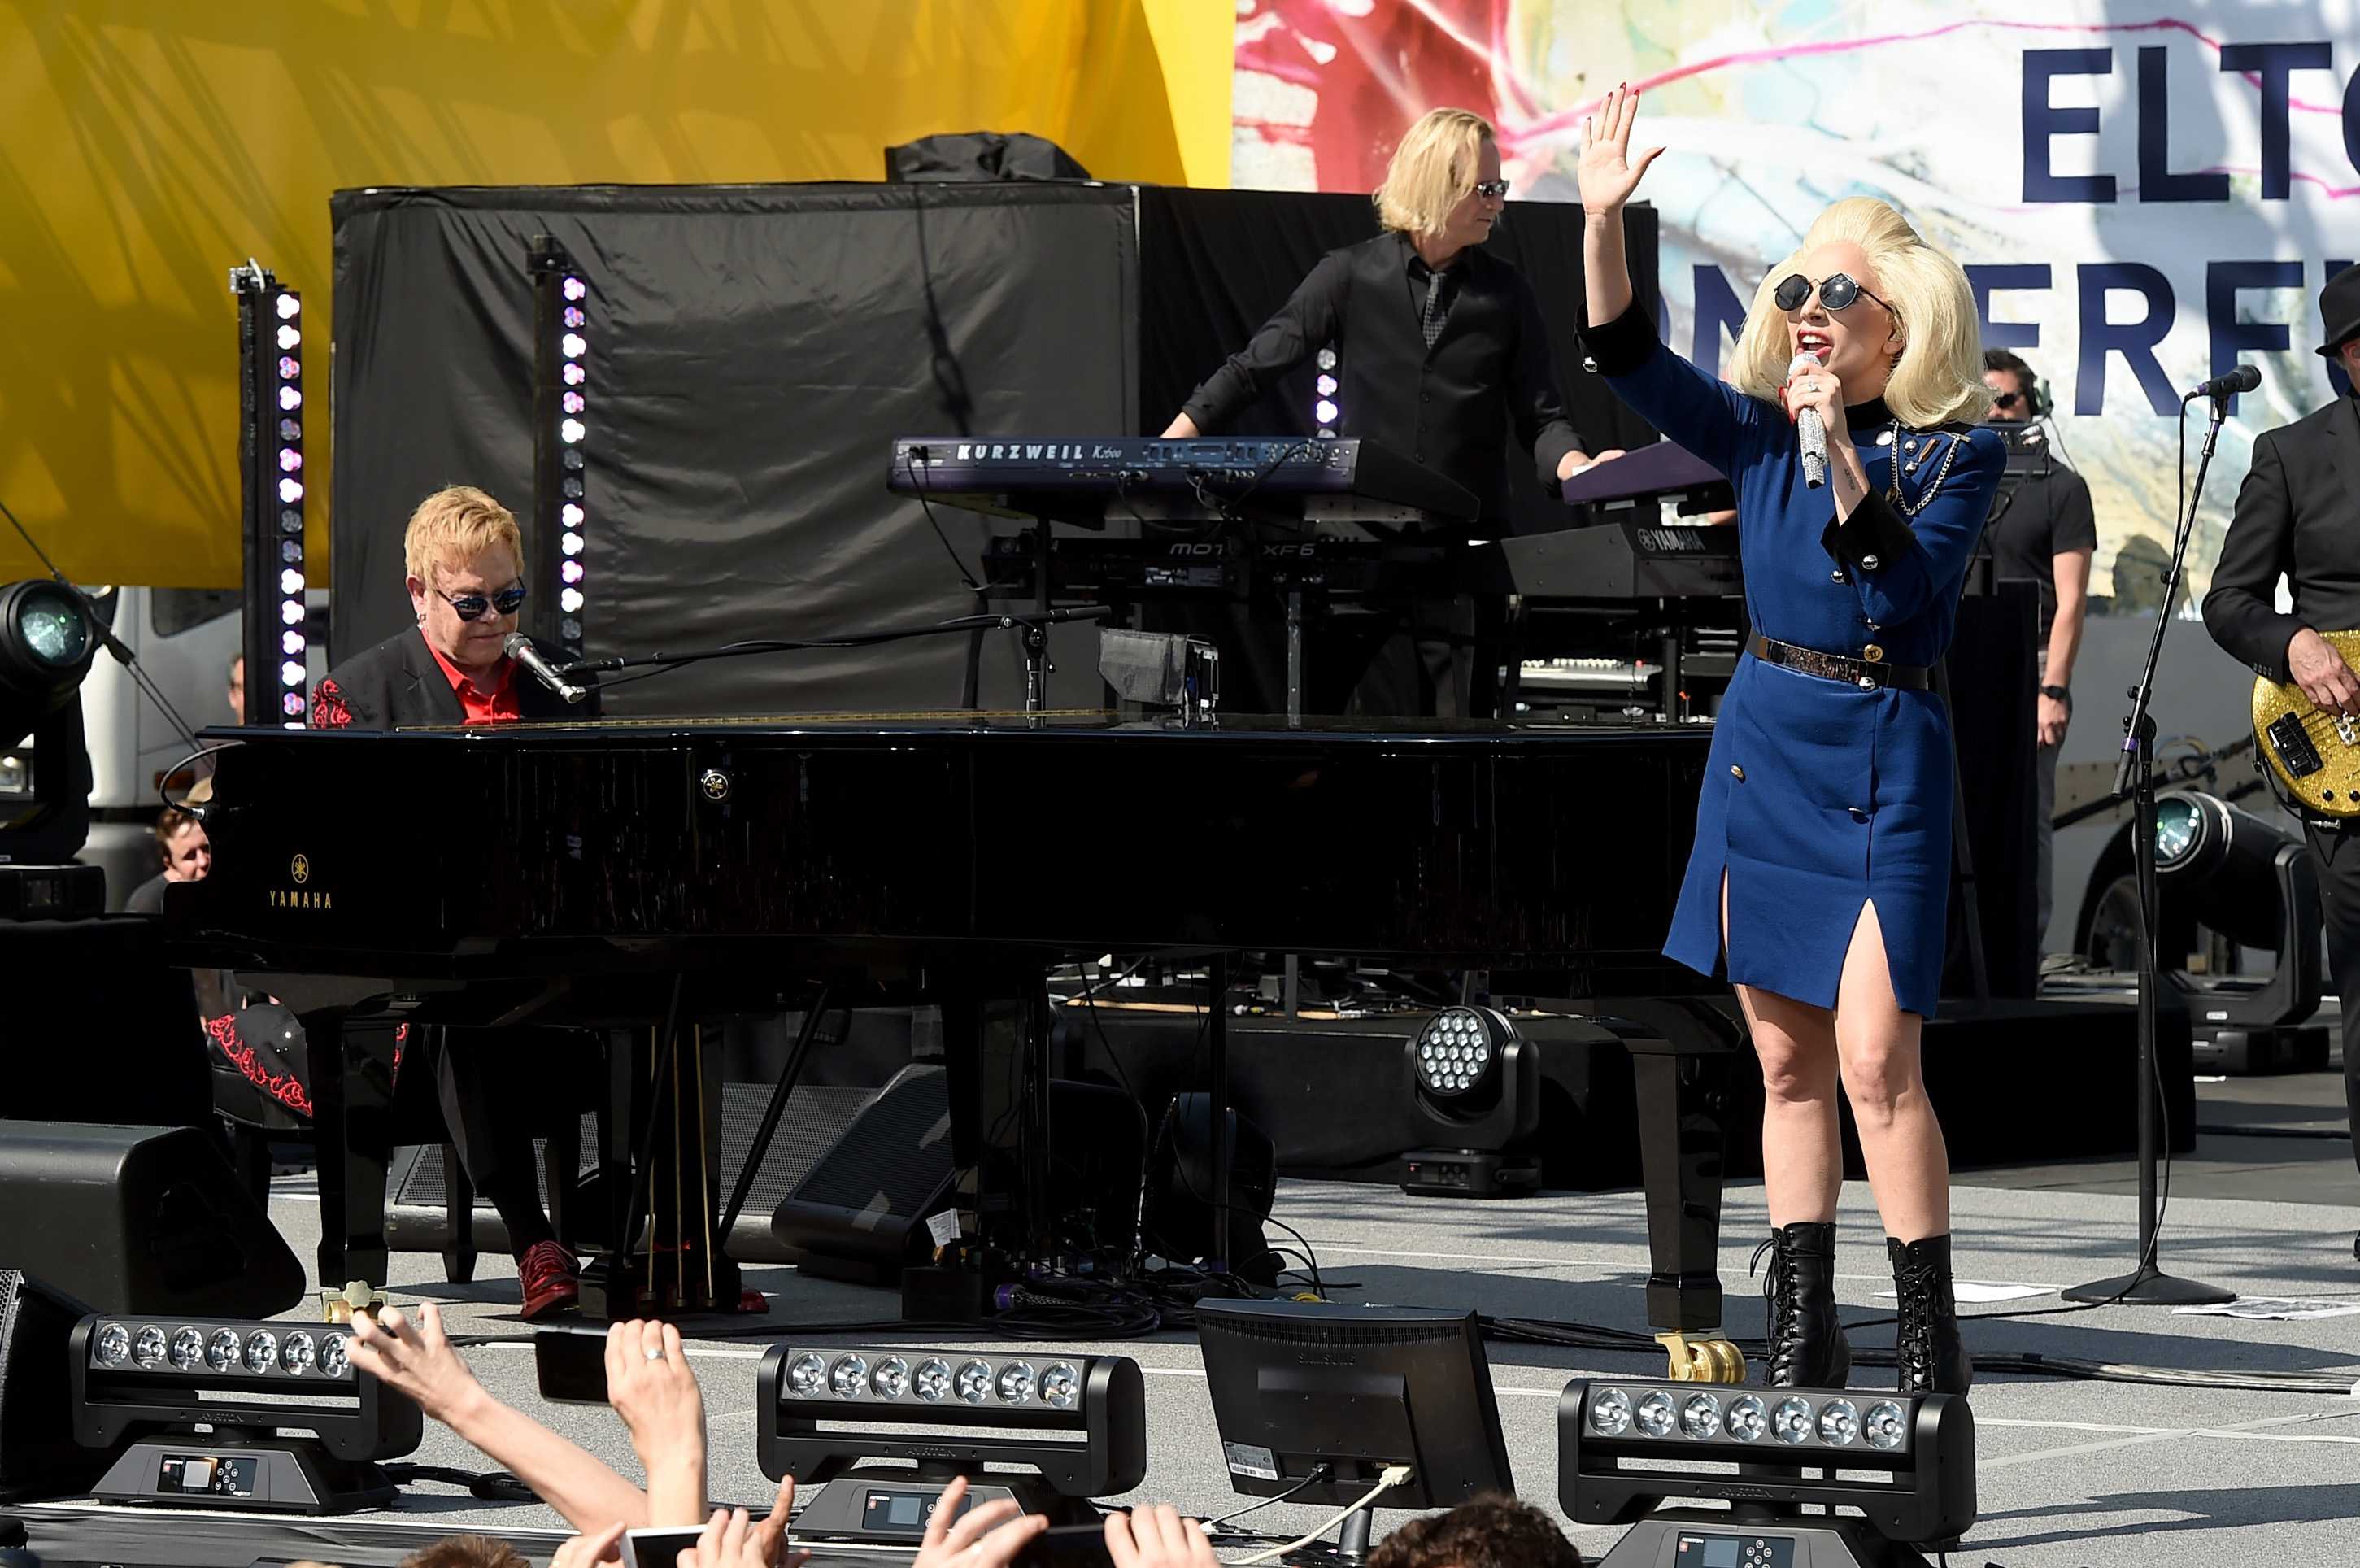 Elton John Lady Gaga Performance